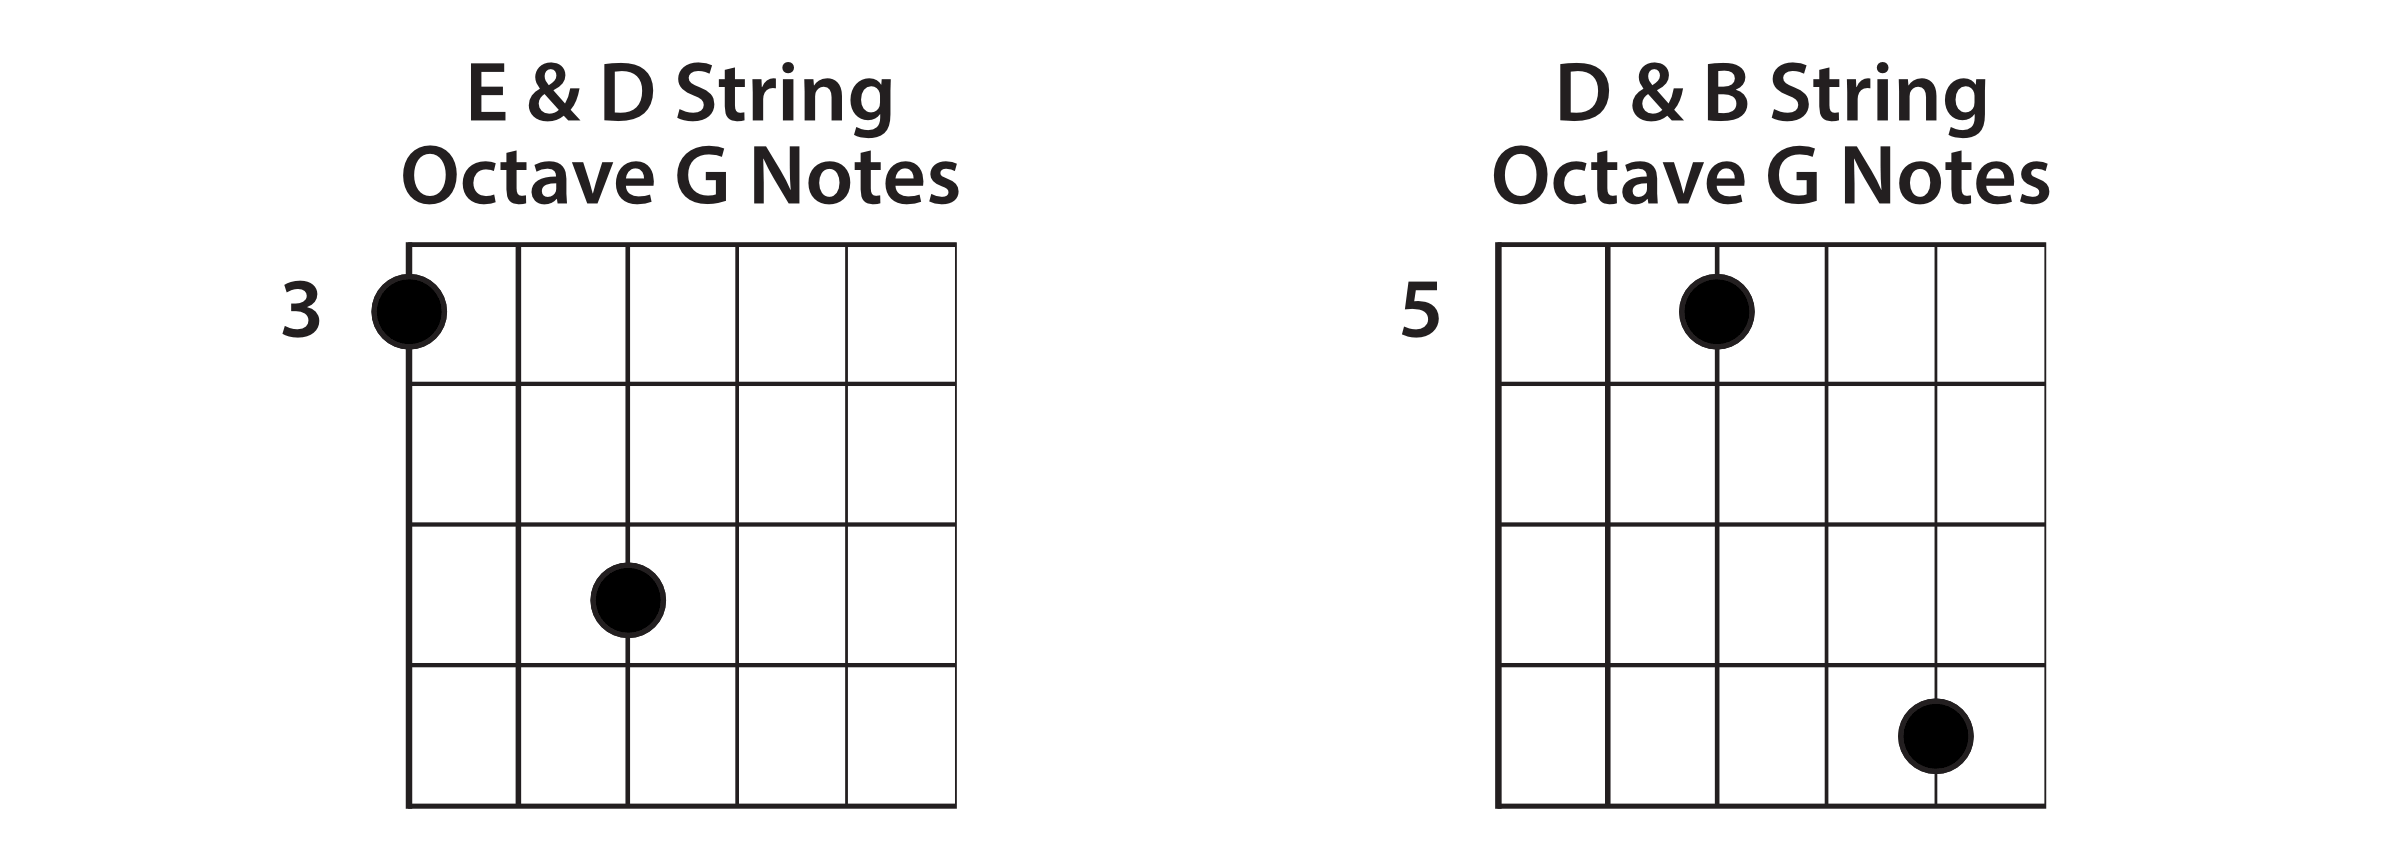 E & D String Octave Centers